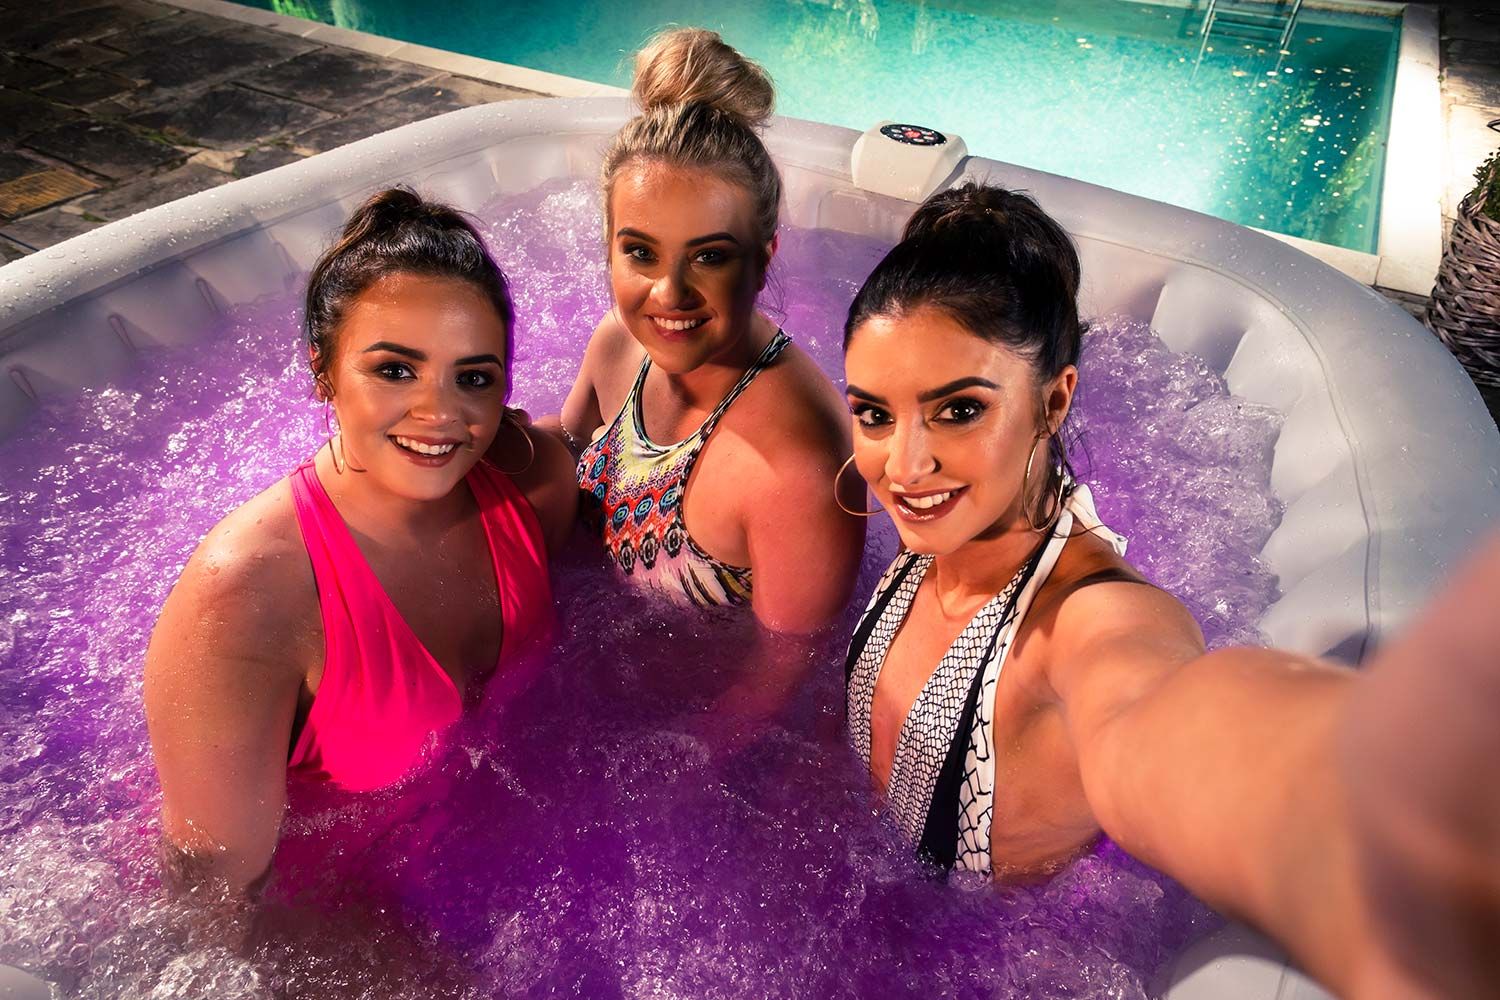 CleverSpa Hot Tub Can Improve Your Health